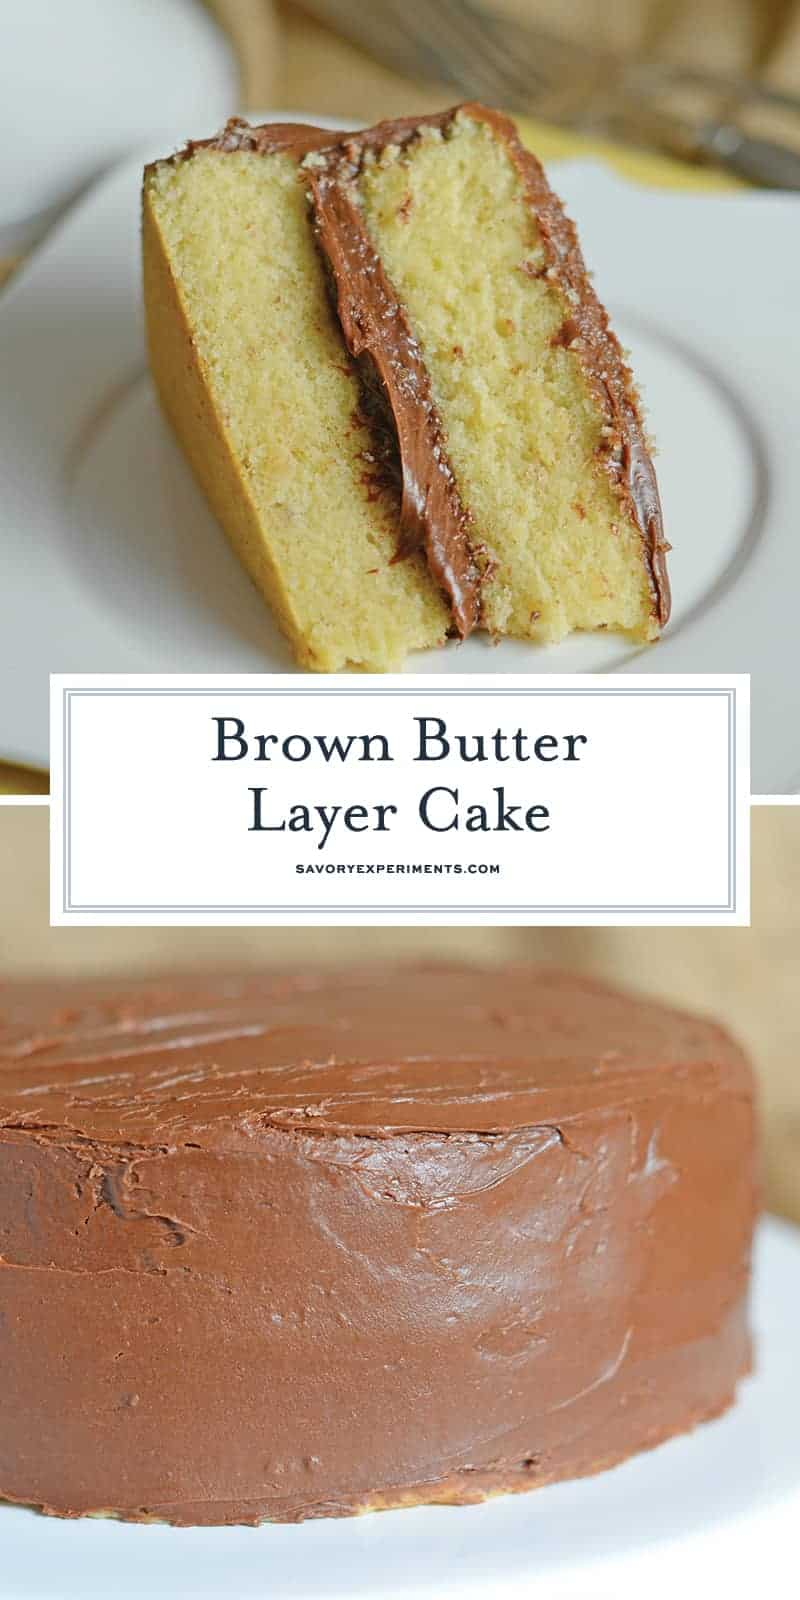 Brown Butter Cake is an easy cake made from scratch using delicious brown butter, chocolate mousse filling and chocolate buttercream frosting. #brownbuttercake #layercakerecipes www.savoryexperiments.com